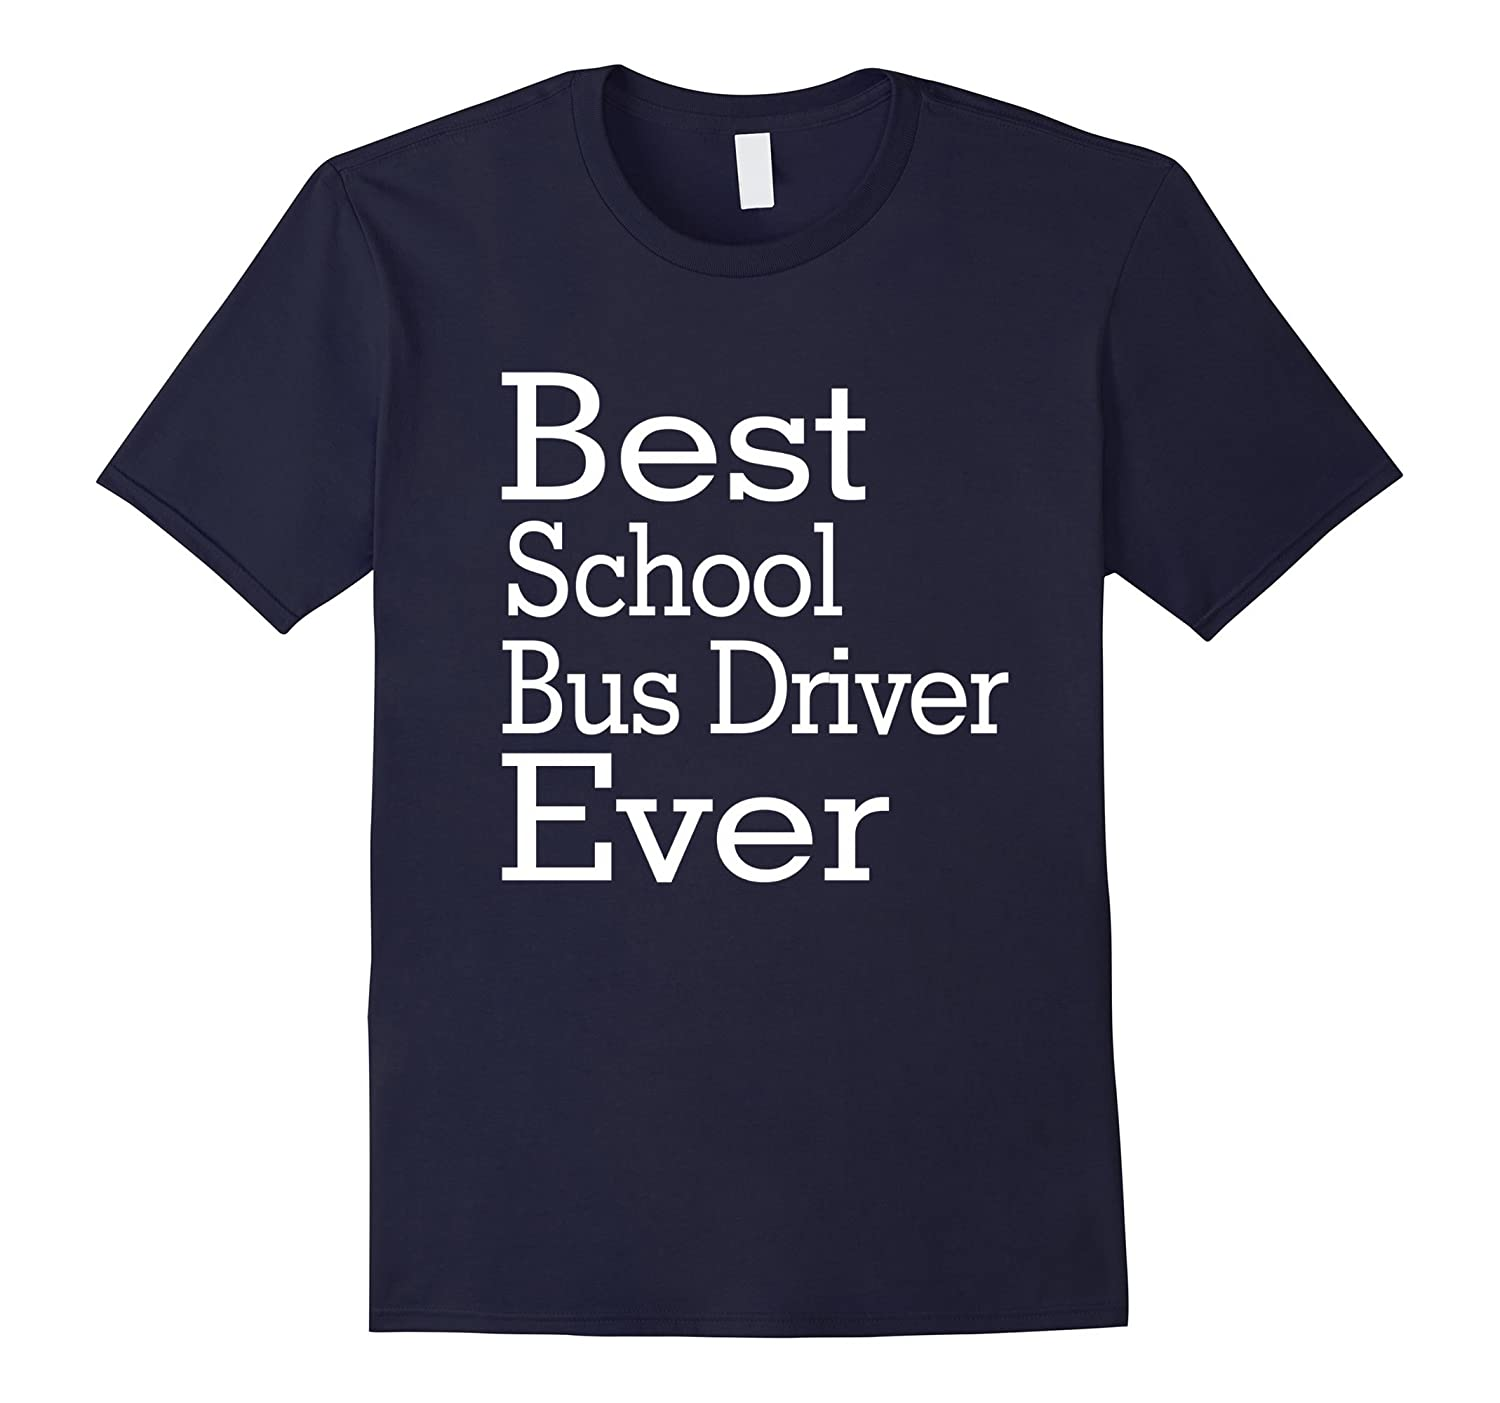 Good christmas gifts school bus driver